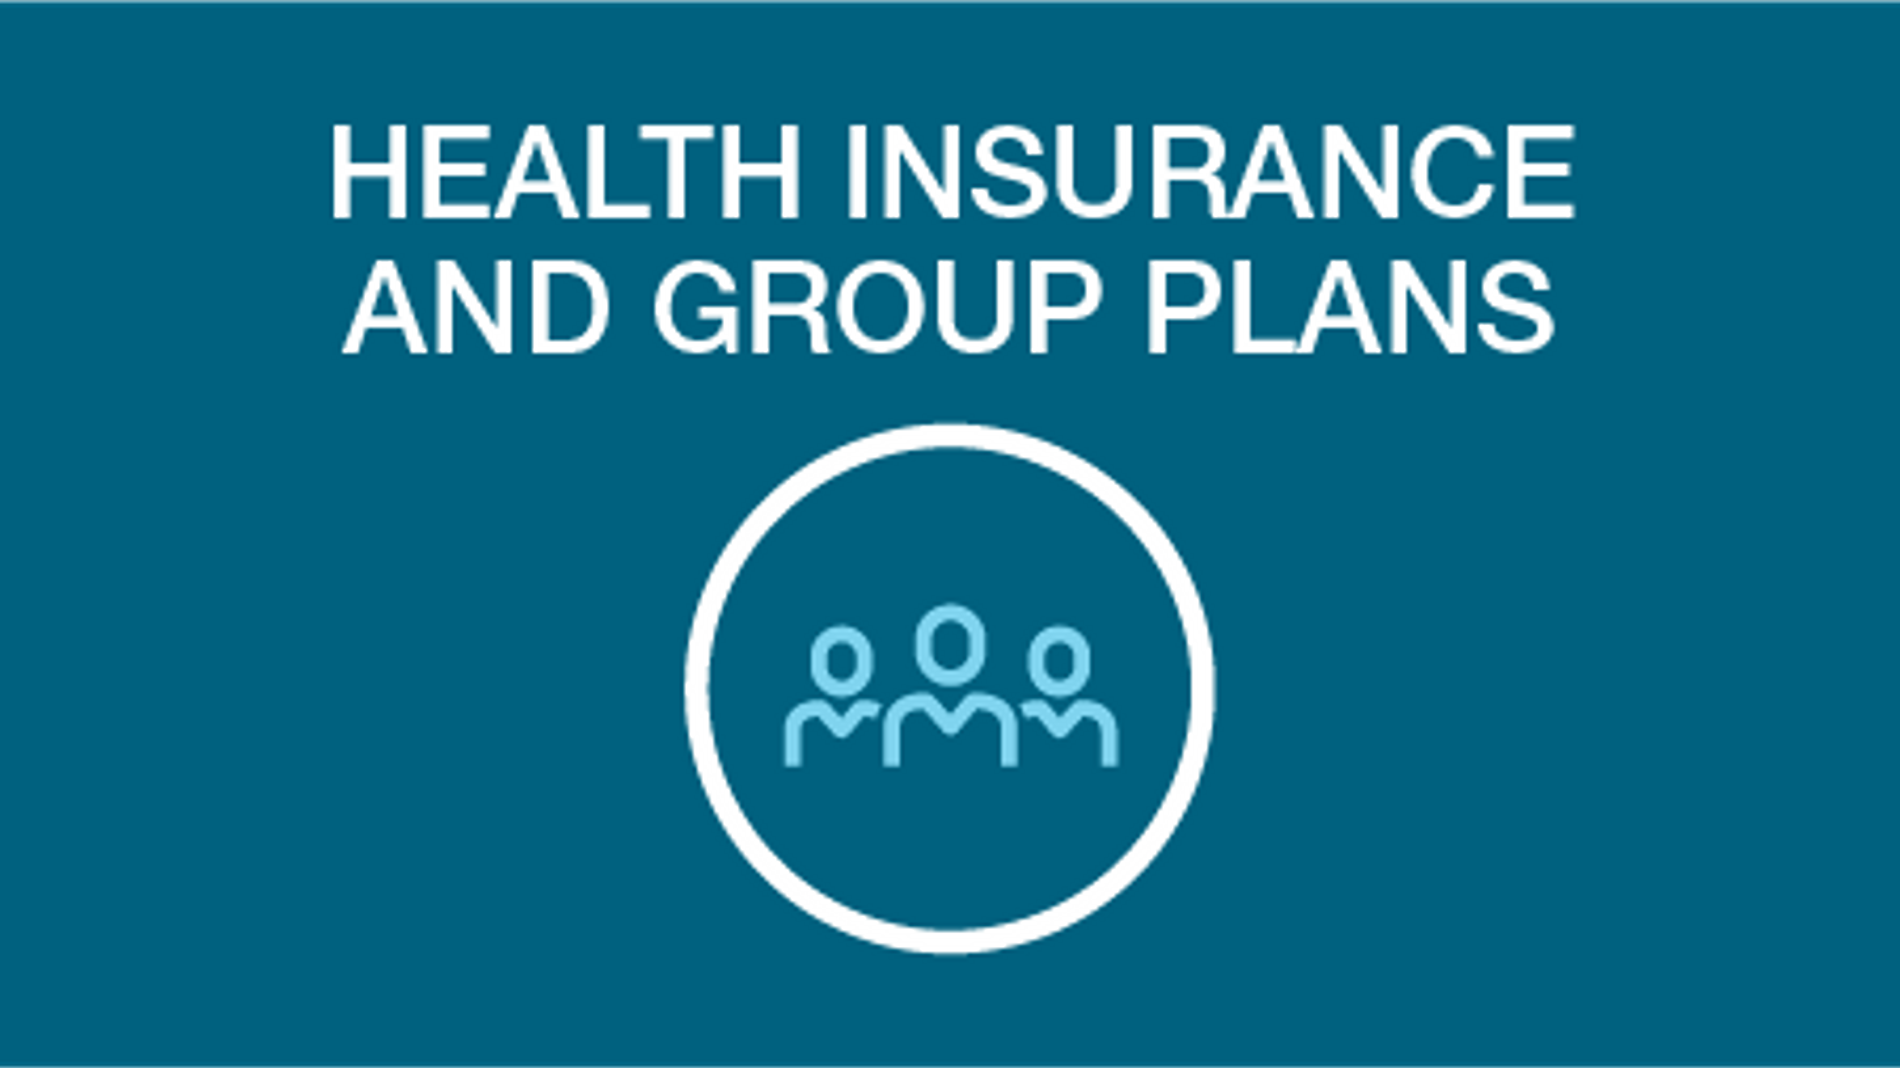 Health insurance and group plans icon